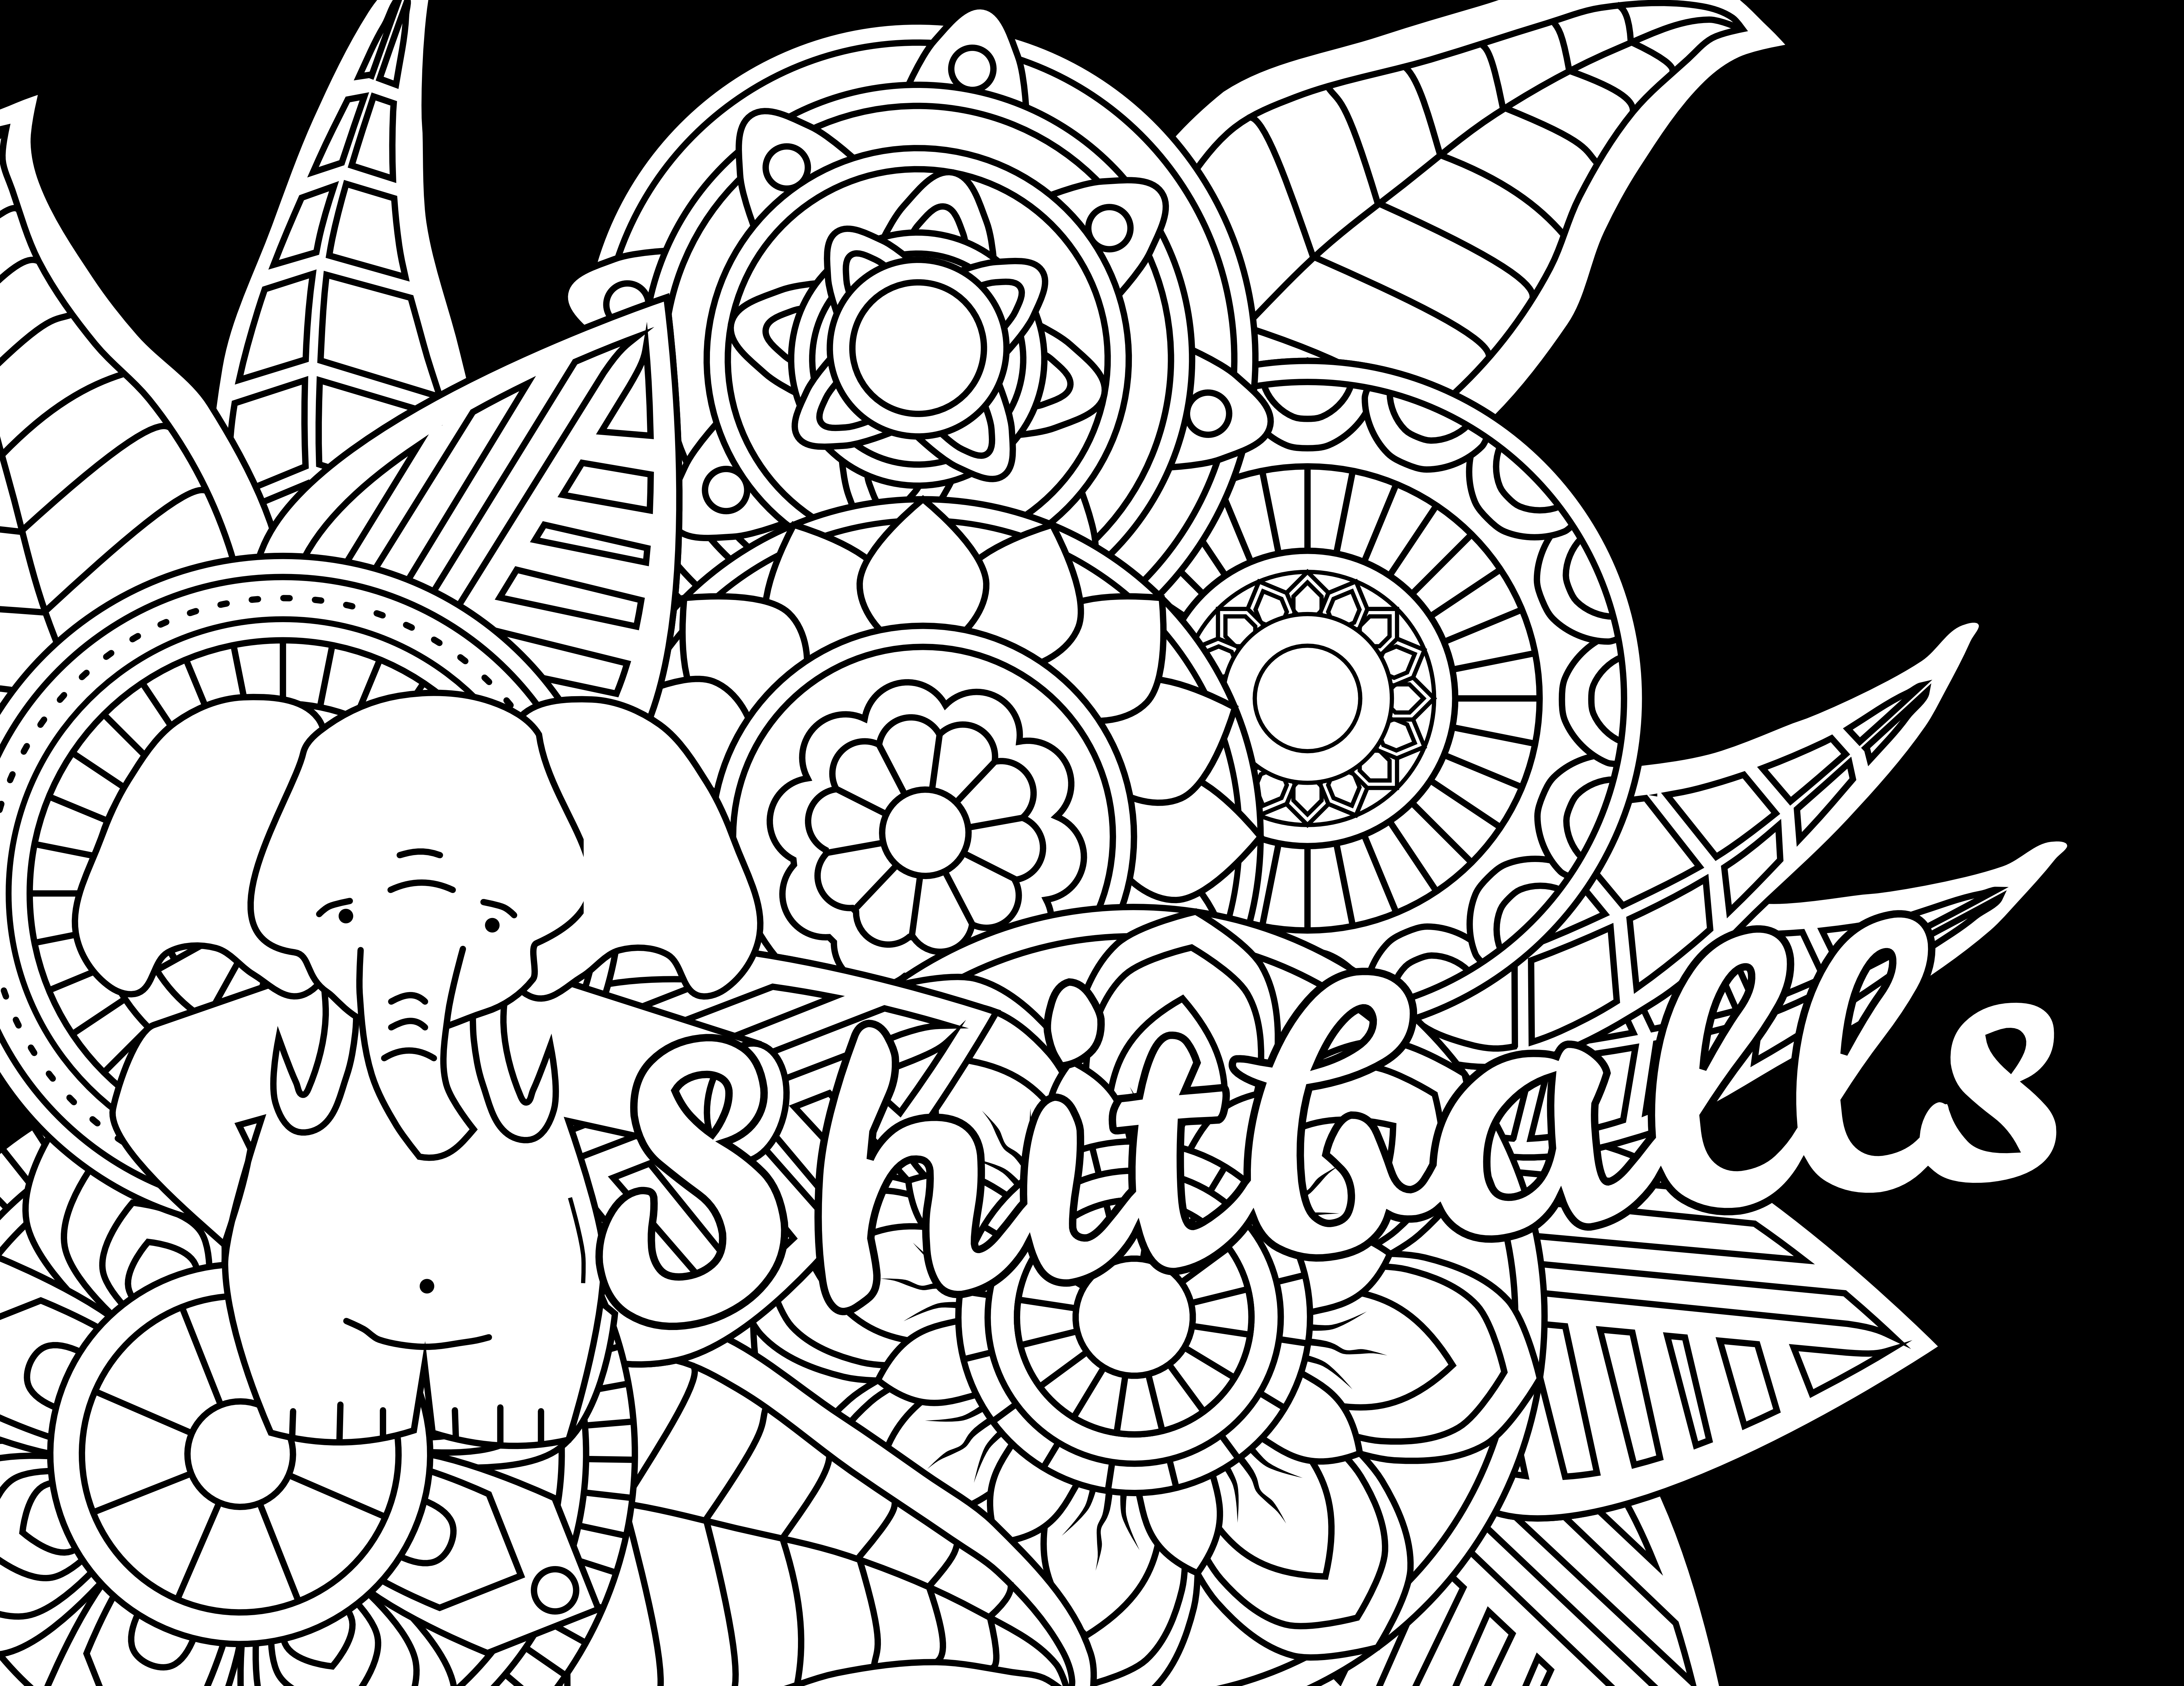 Girl prom dress adult coloring pages online free print | Adult ... | 5328x6900